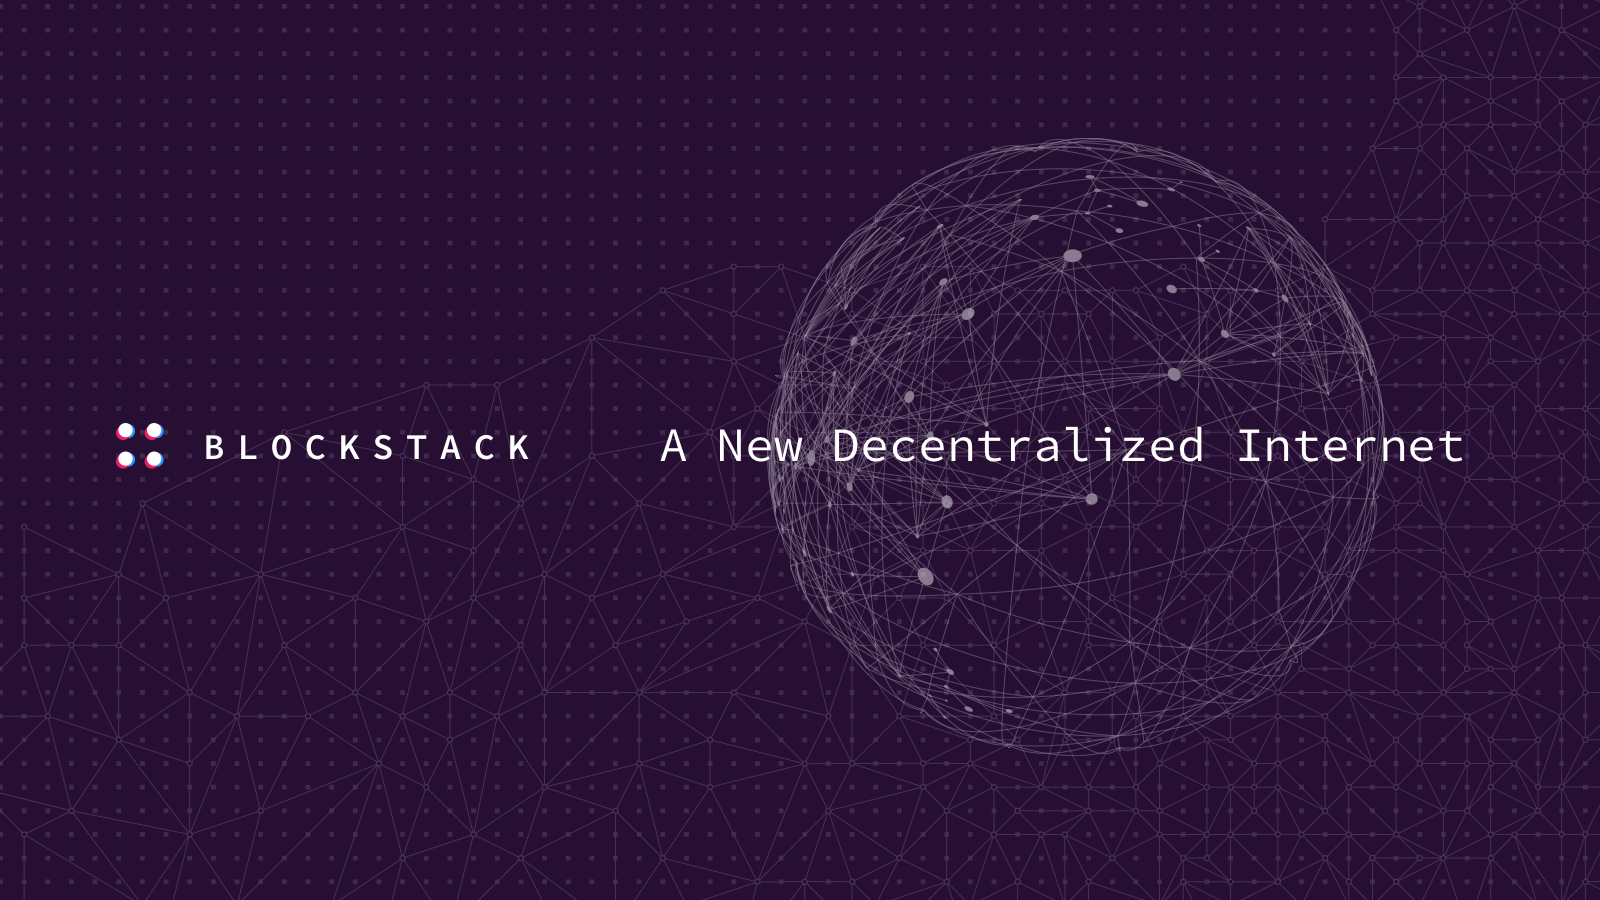 /surviving-crypto-winter-part-2-blockstack-and-the-great-pendulum-of-history-c56d30c0c236 feature image